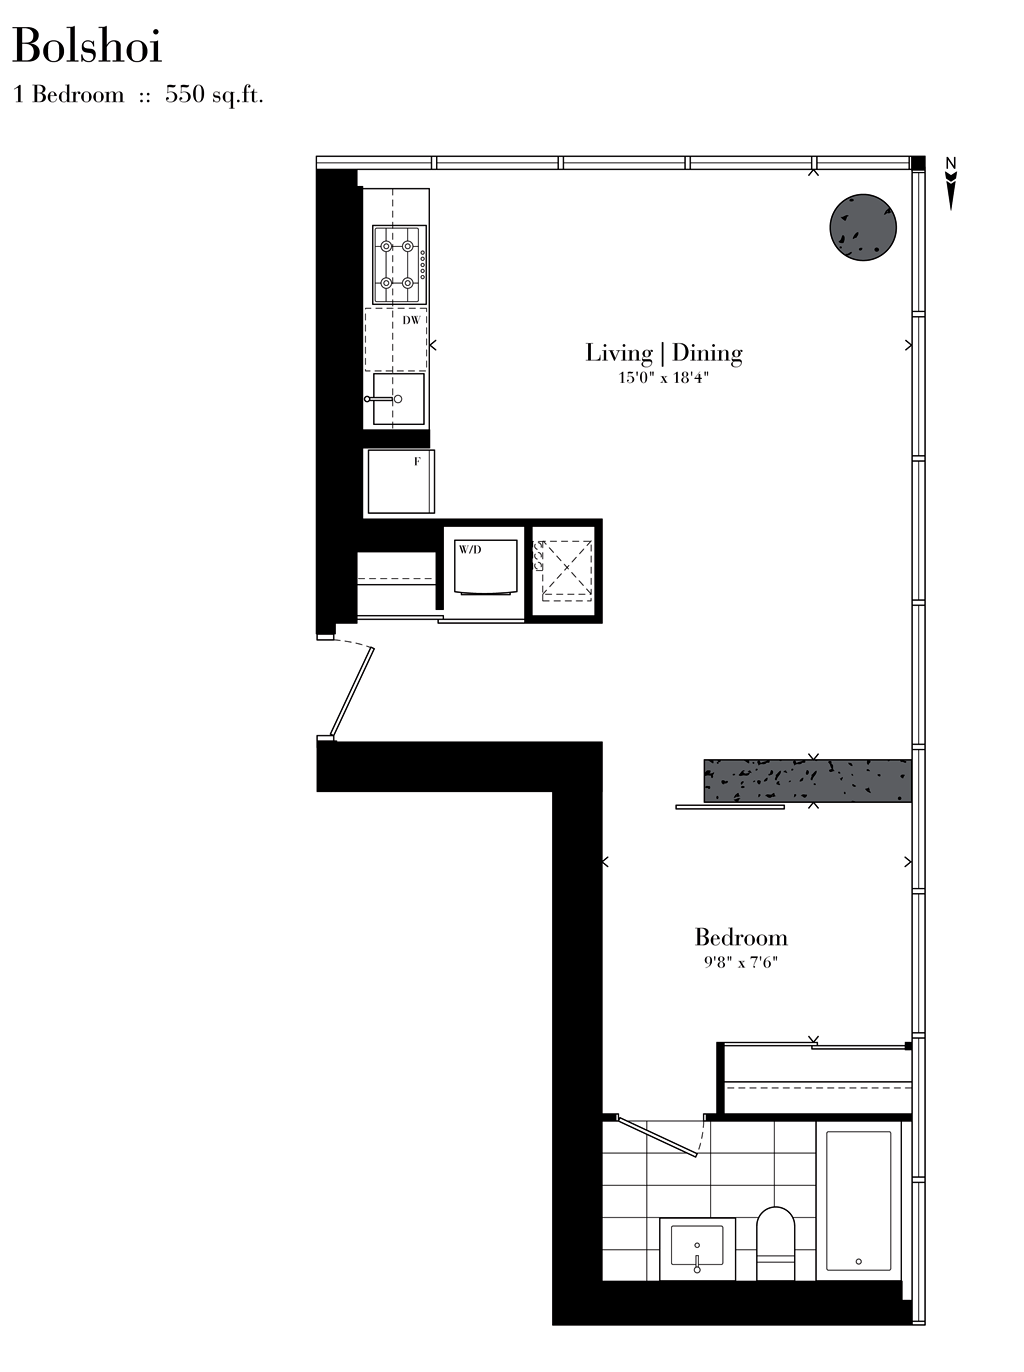 224 KING ST WEST - ONE BEDROOM 550 SQ FEET - CONTACT YOSSI KAPLAN